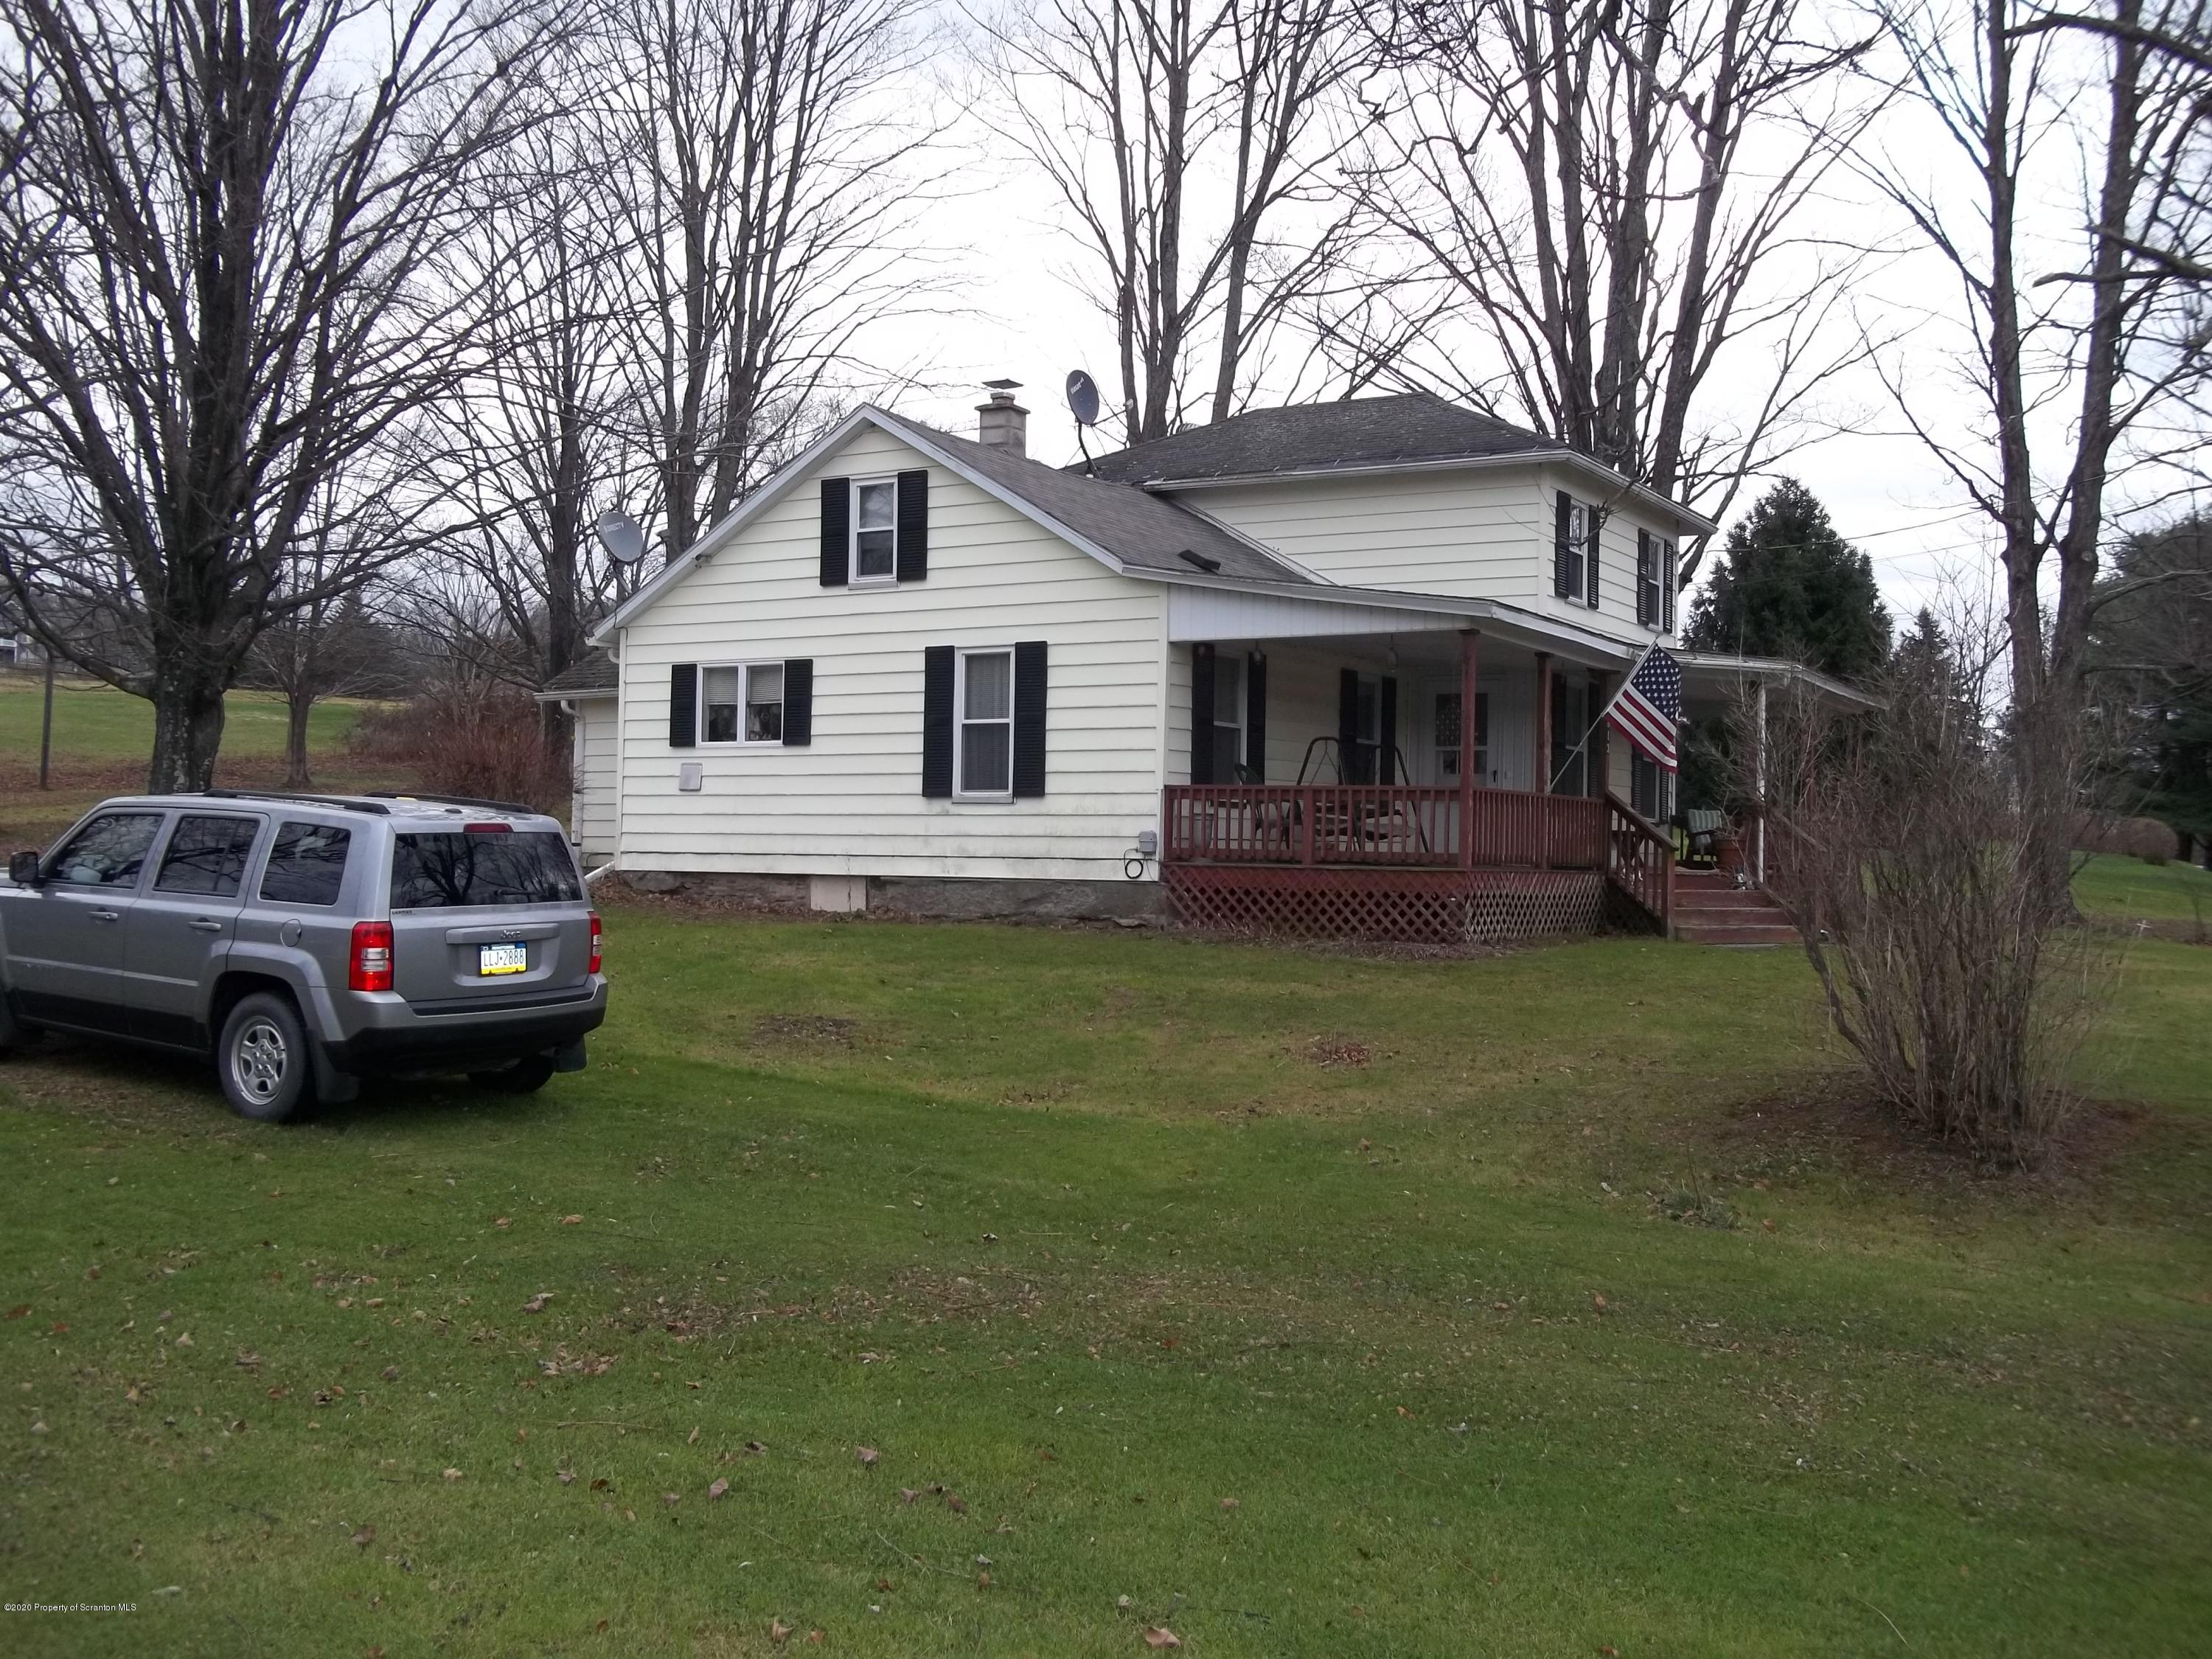 3813 SR 492, New Milford, Pennsylvania 18834, 3 Bedrooms Bedrooms, 6 Rooms Rooms,1 BathroomBathrooms,Single Family,For Sale,SR 492,20-4941